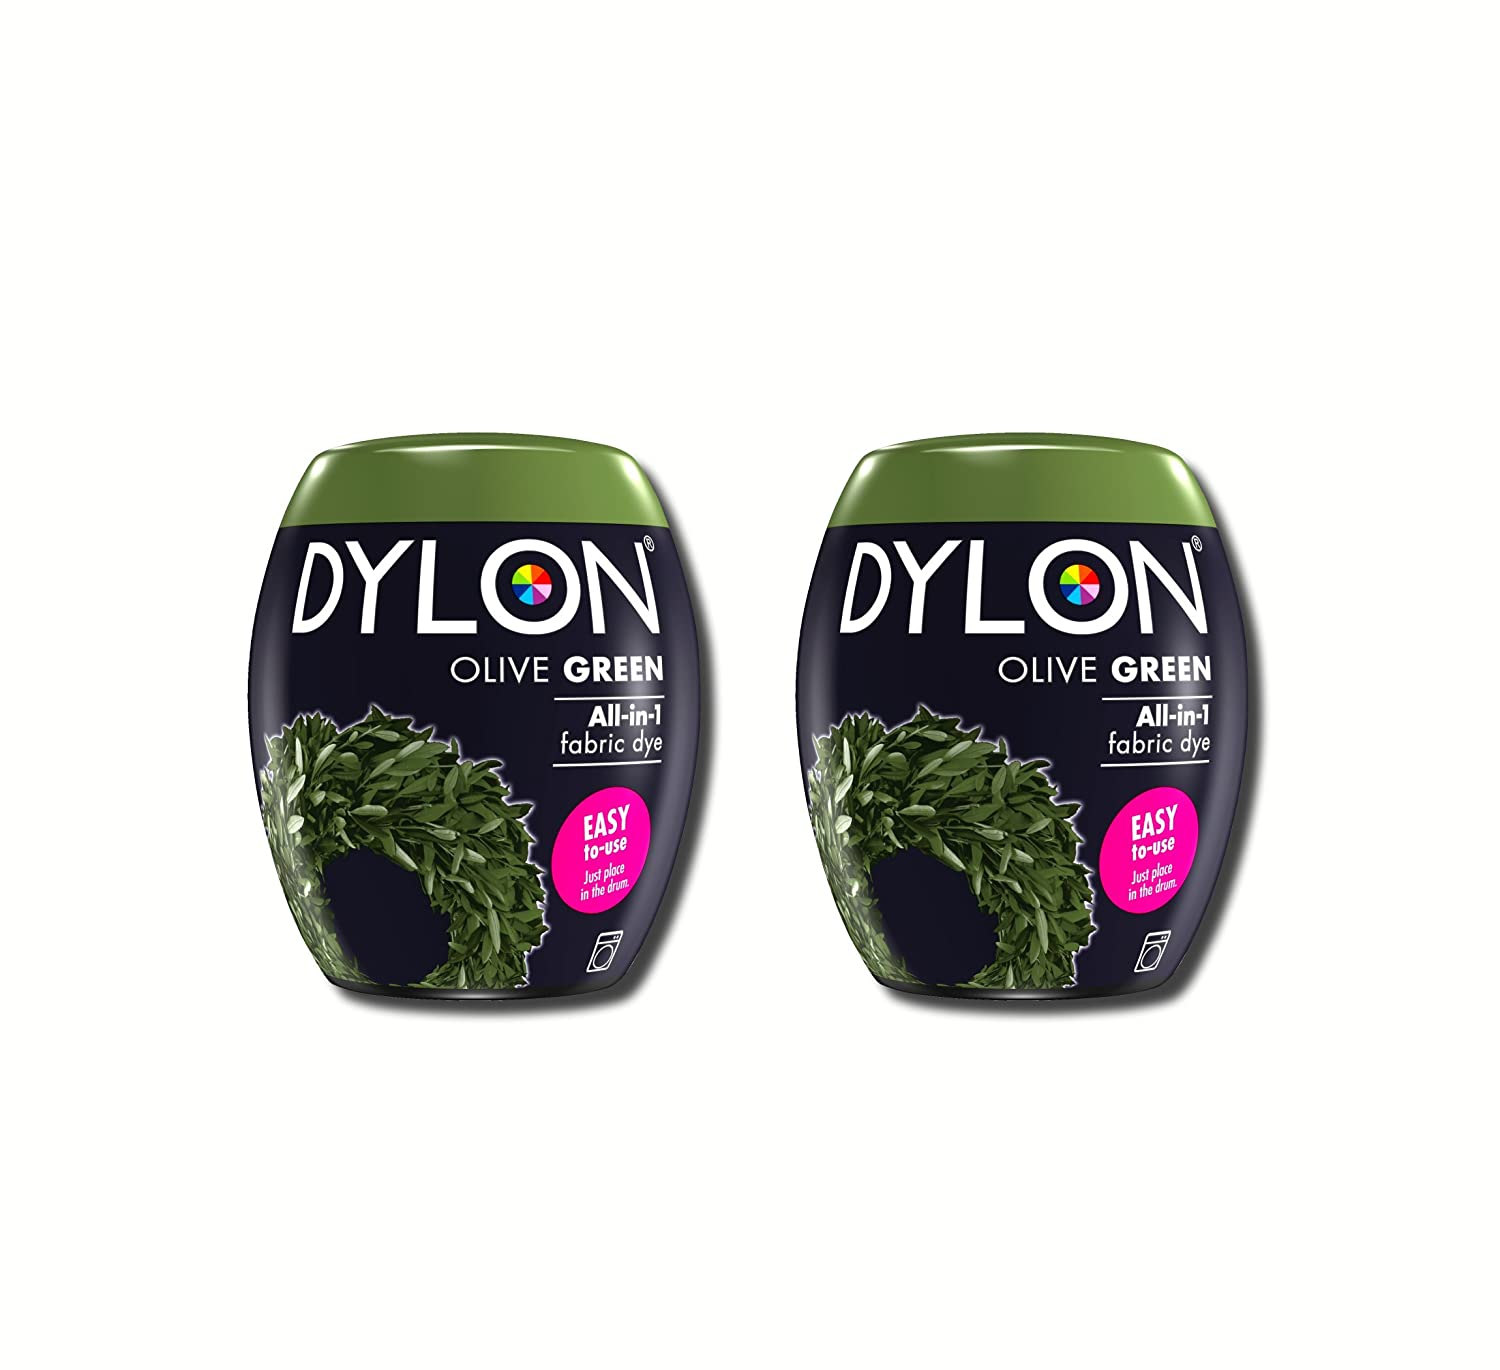 New Dylon 350g Olive Green Machine Dye Pod 2 Pack D ylon